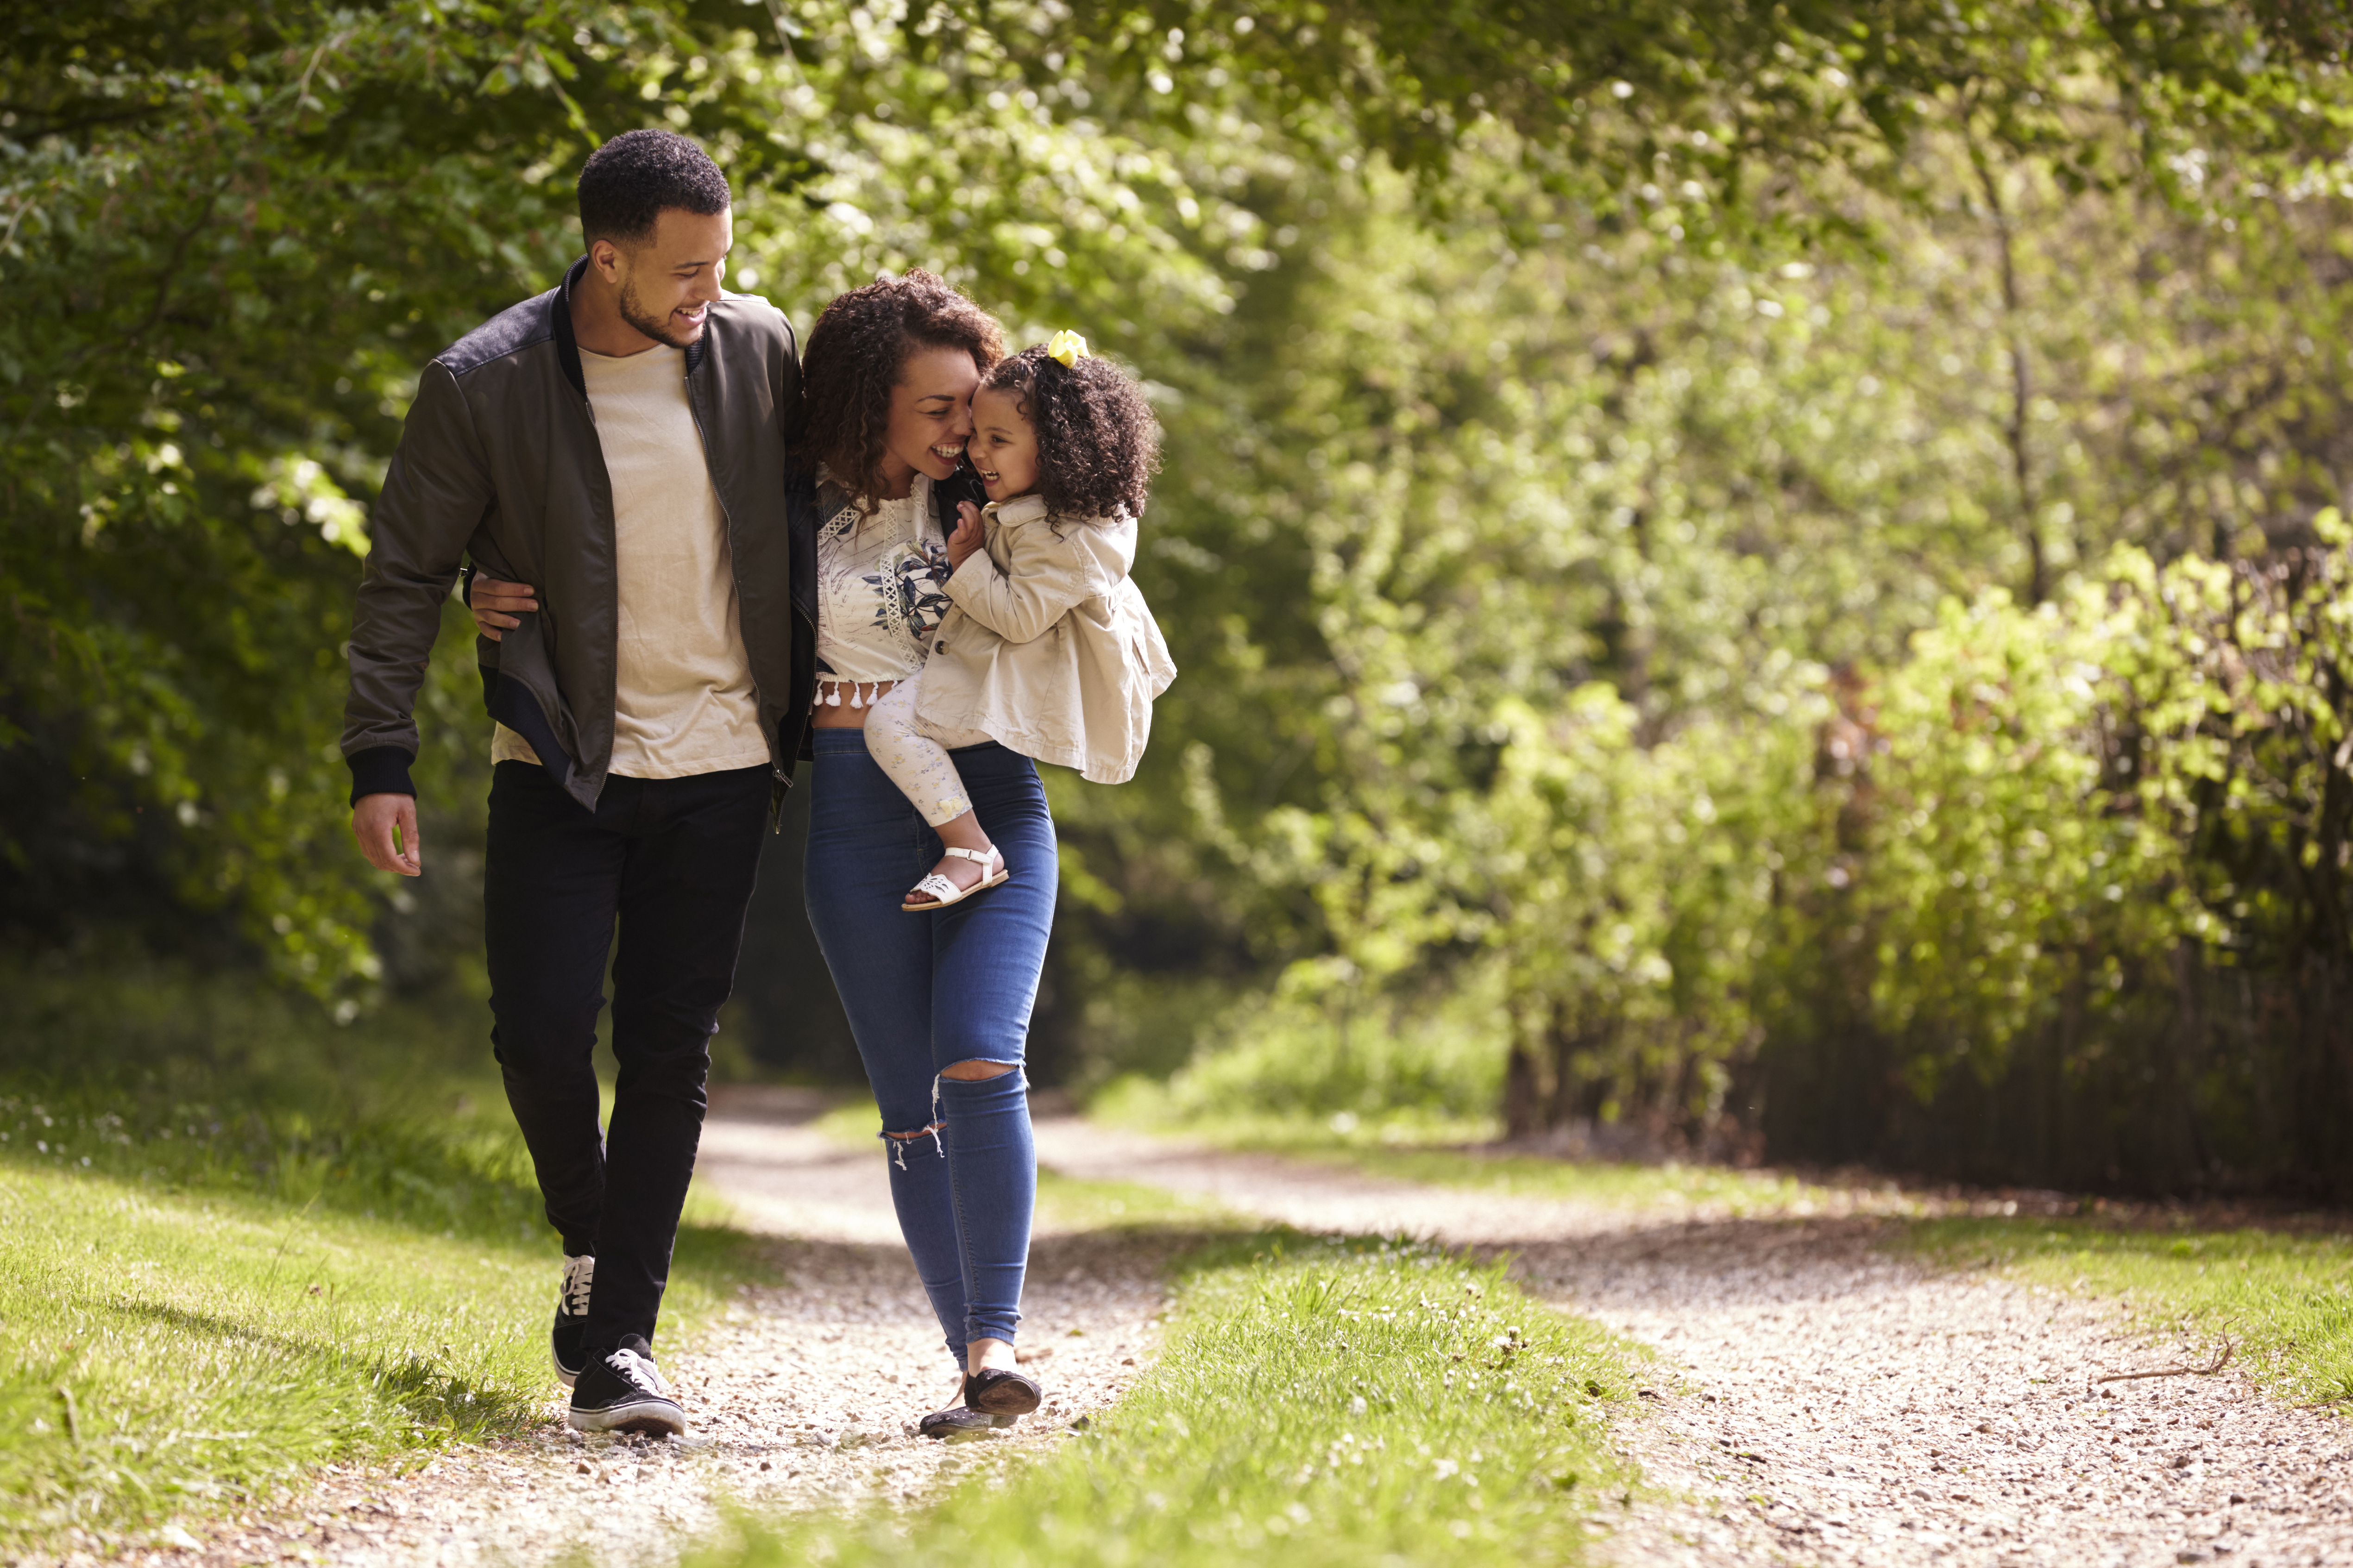 Adoption from Foster Care The Filing Process From Start to Finish